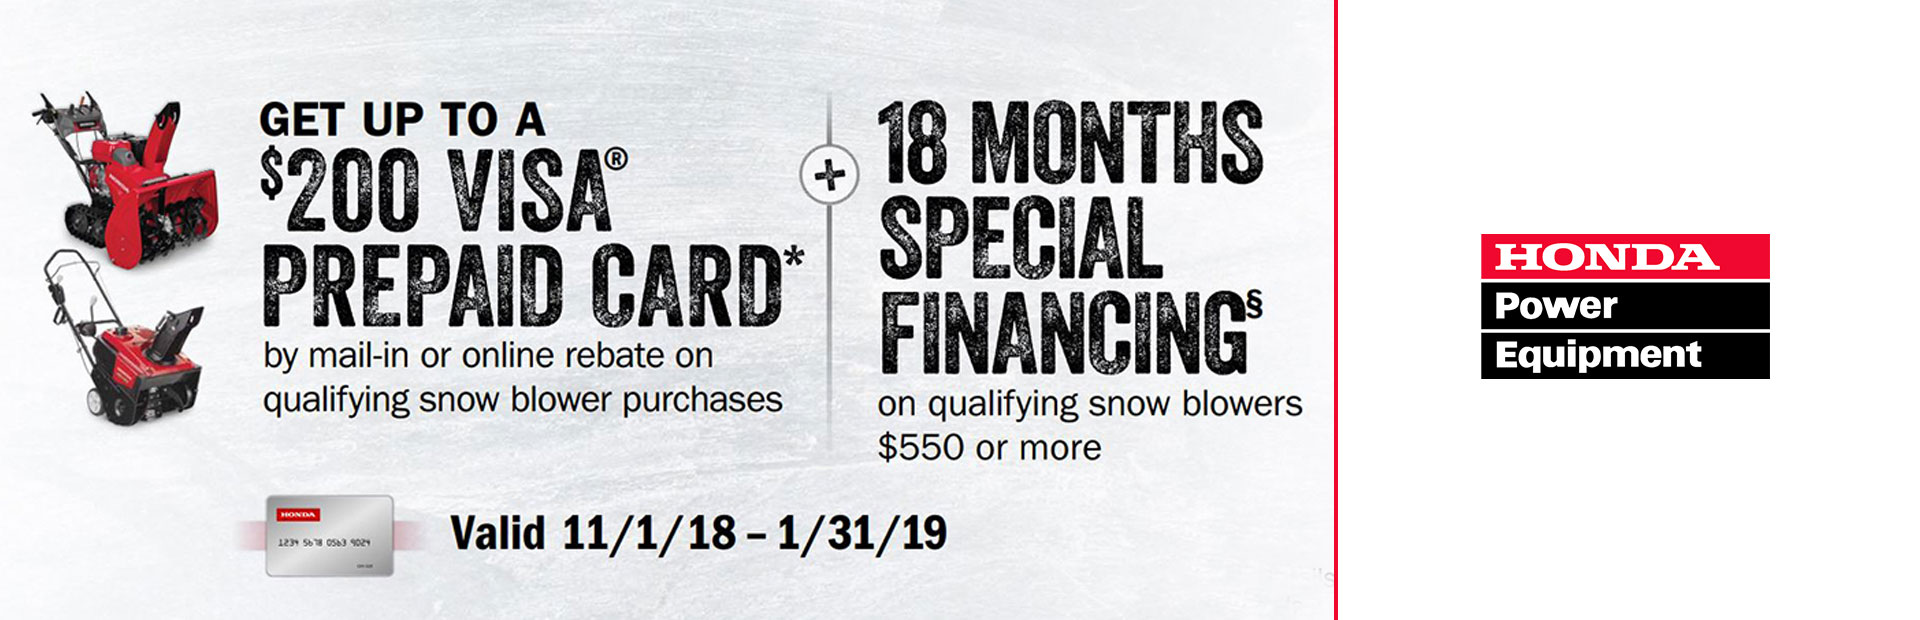 Honda Power Equipment: 18 Month Financing, Plus up to $200 Visa Prepaid